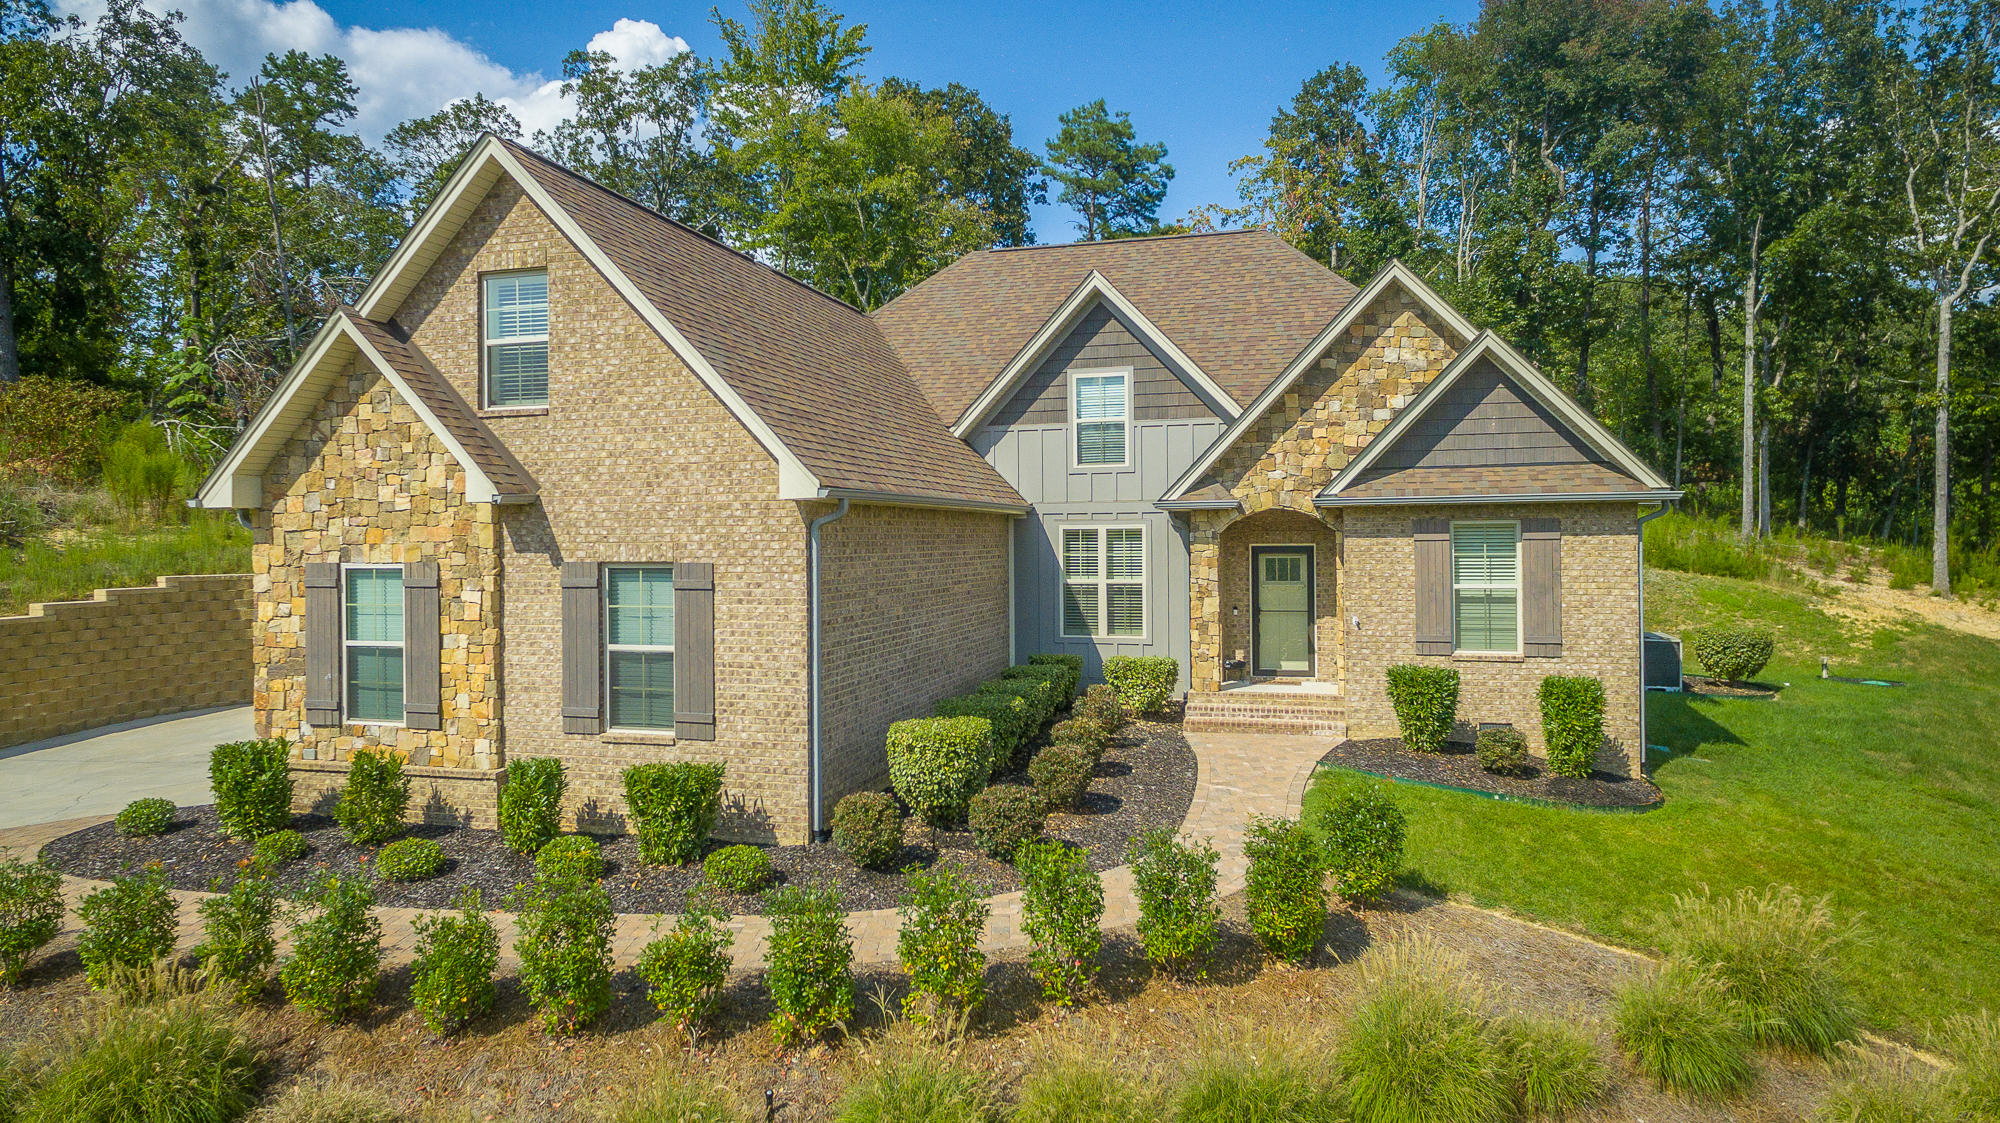 Details for 5118 Abigail, Chattanooga, TN 37416